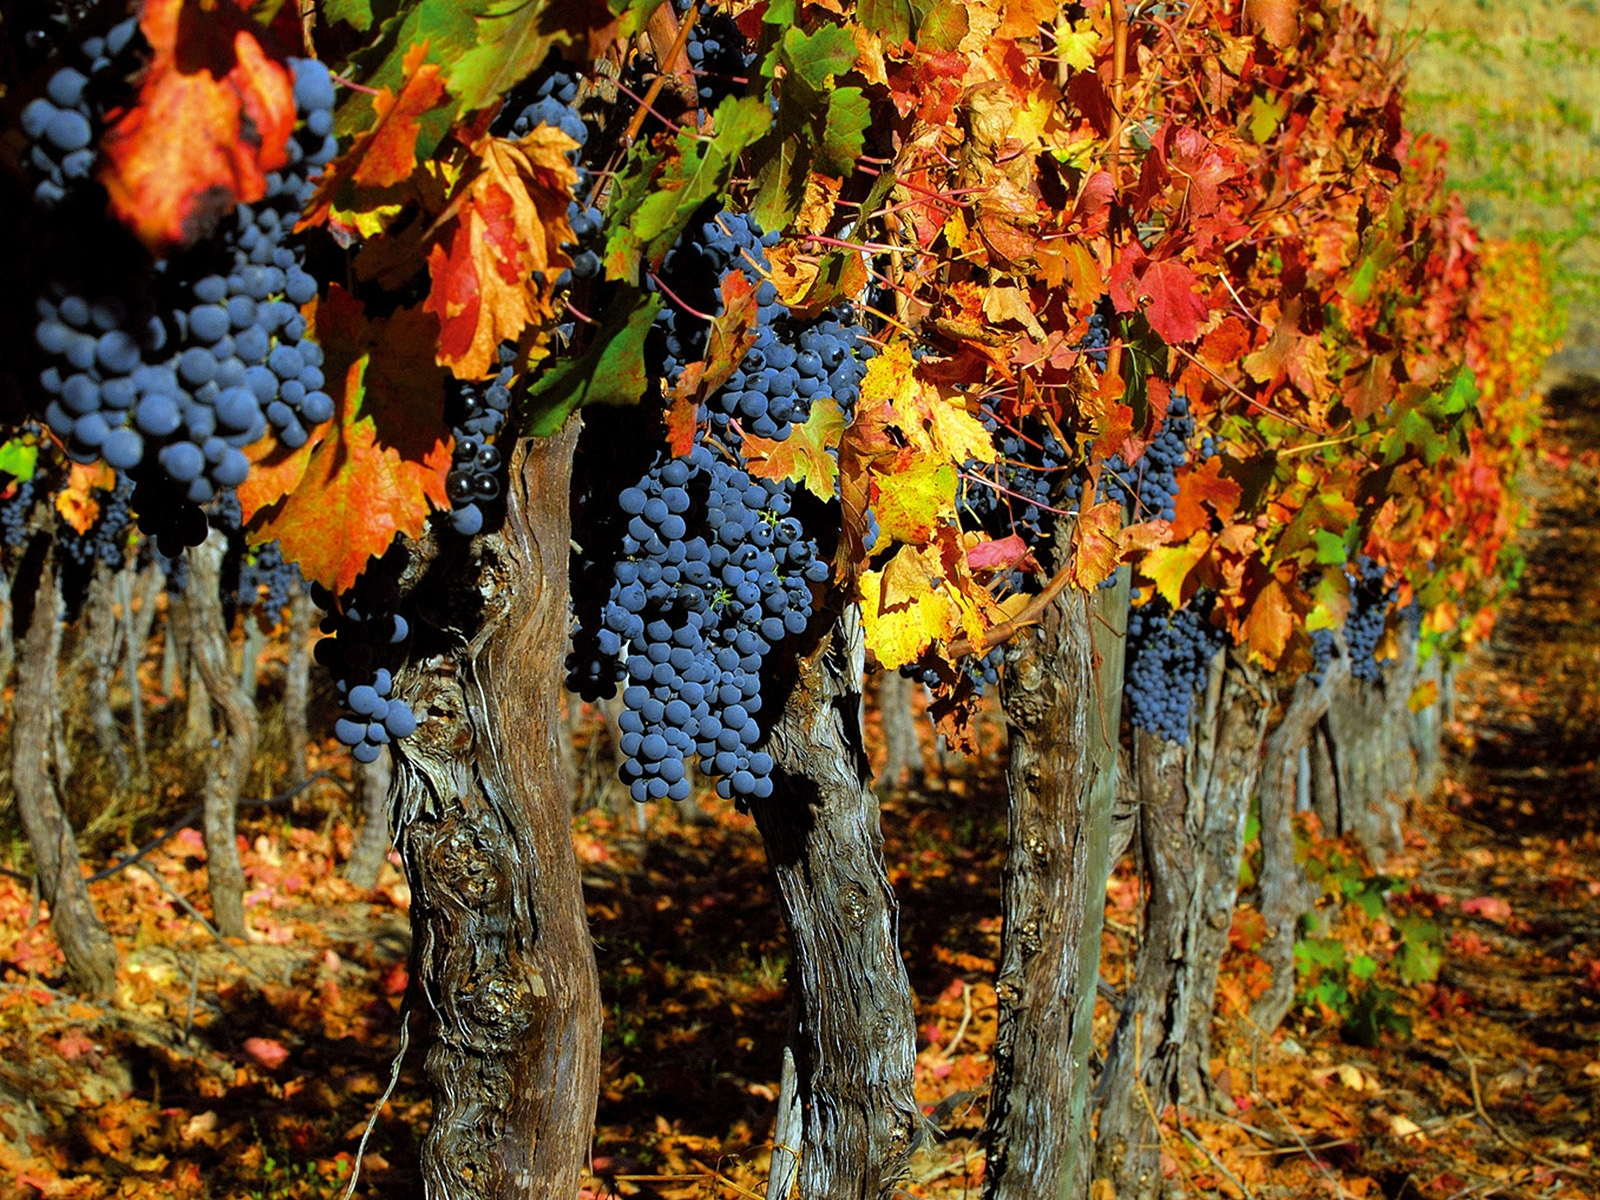 grapes_trees_crop_autumn_clusters_leaves_fruit_5852_1600x1200.jpg